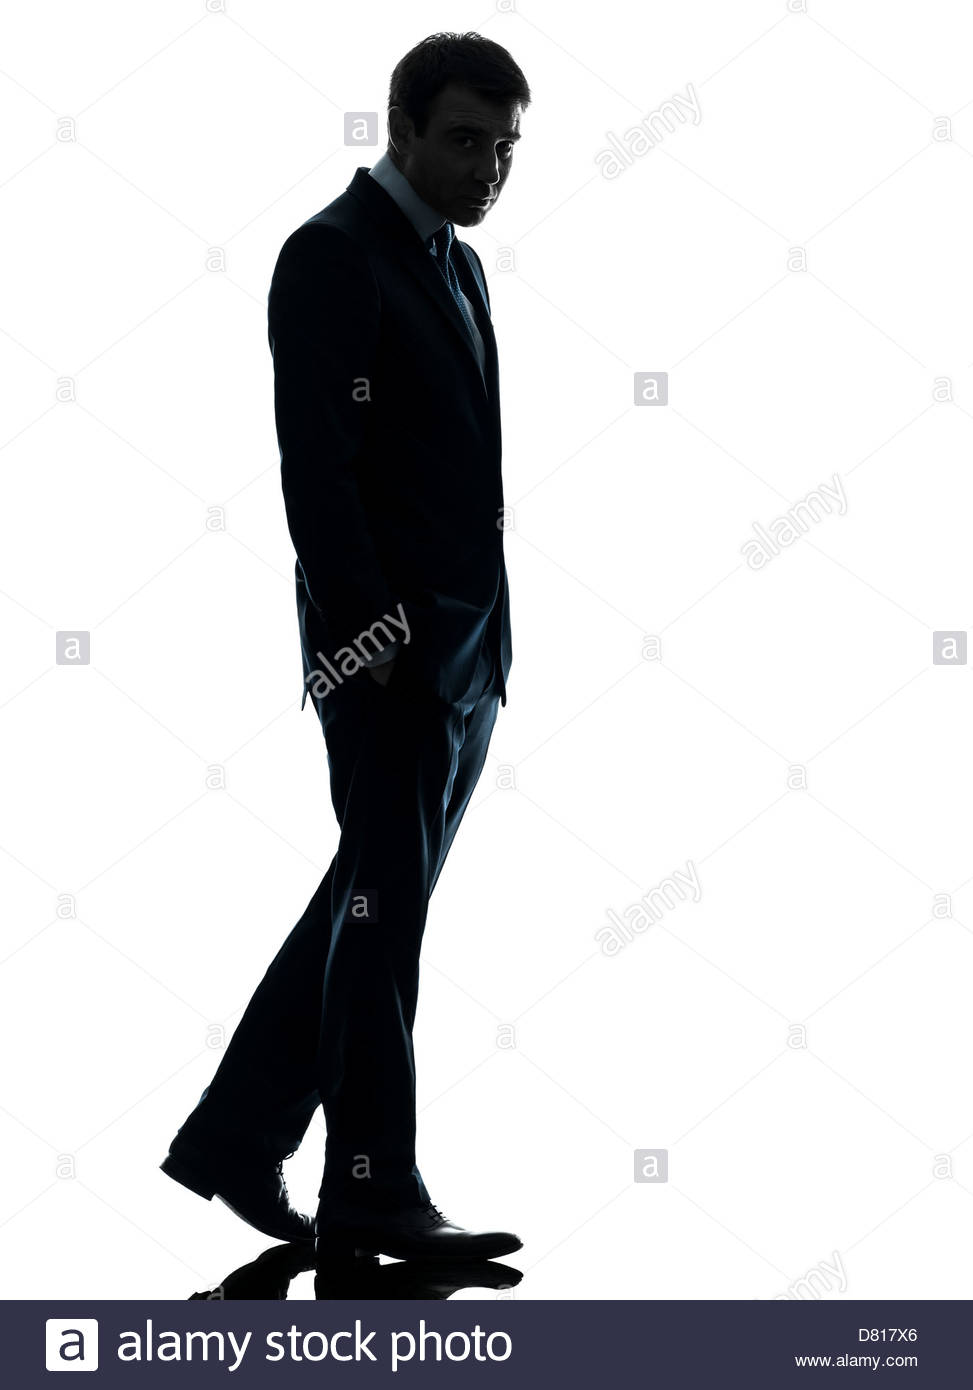 973x1390e Business Man Sad Full Length In Silhouette Studio Isolated